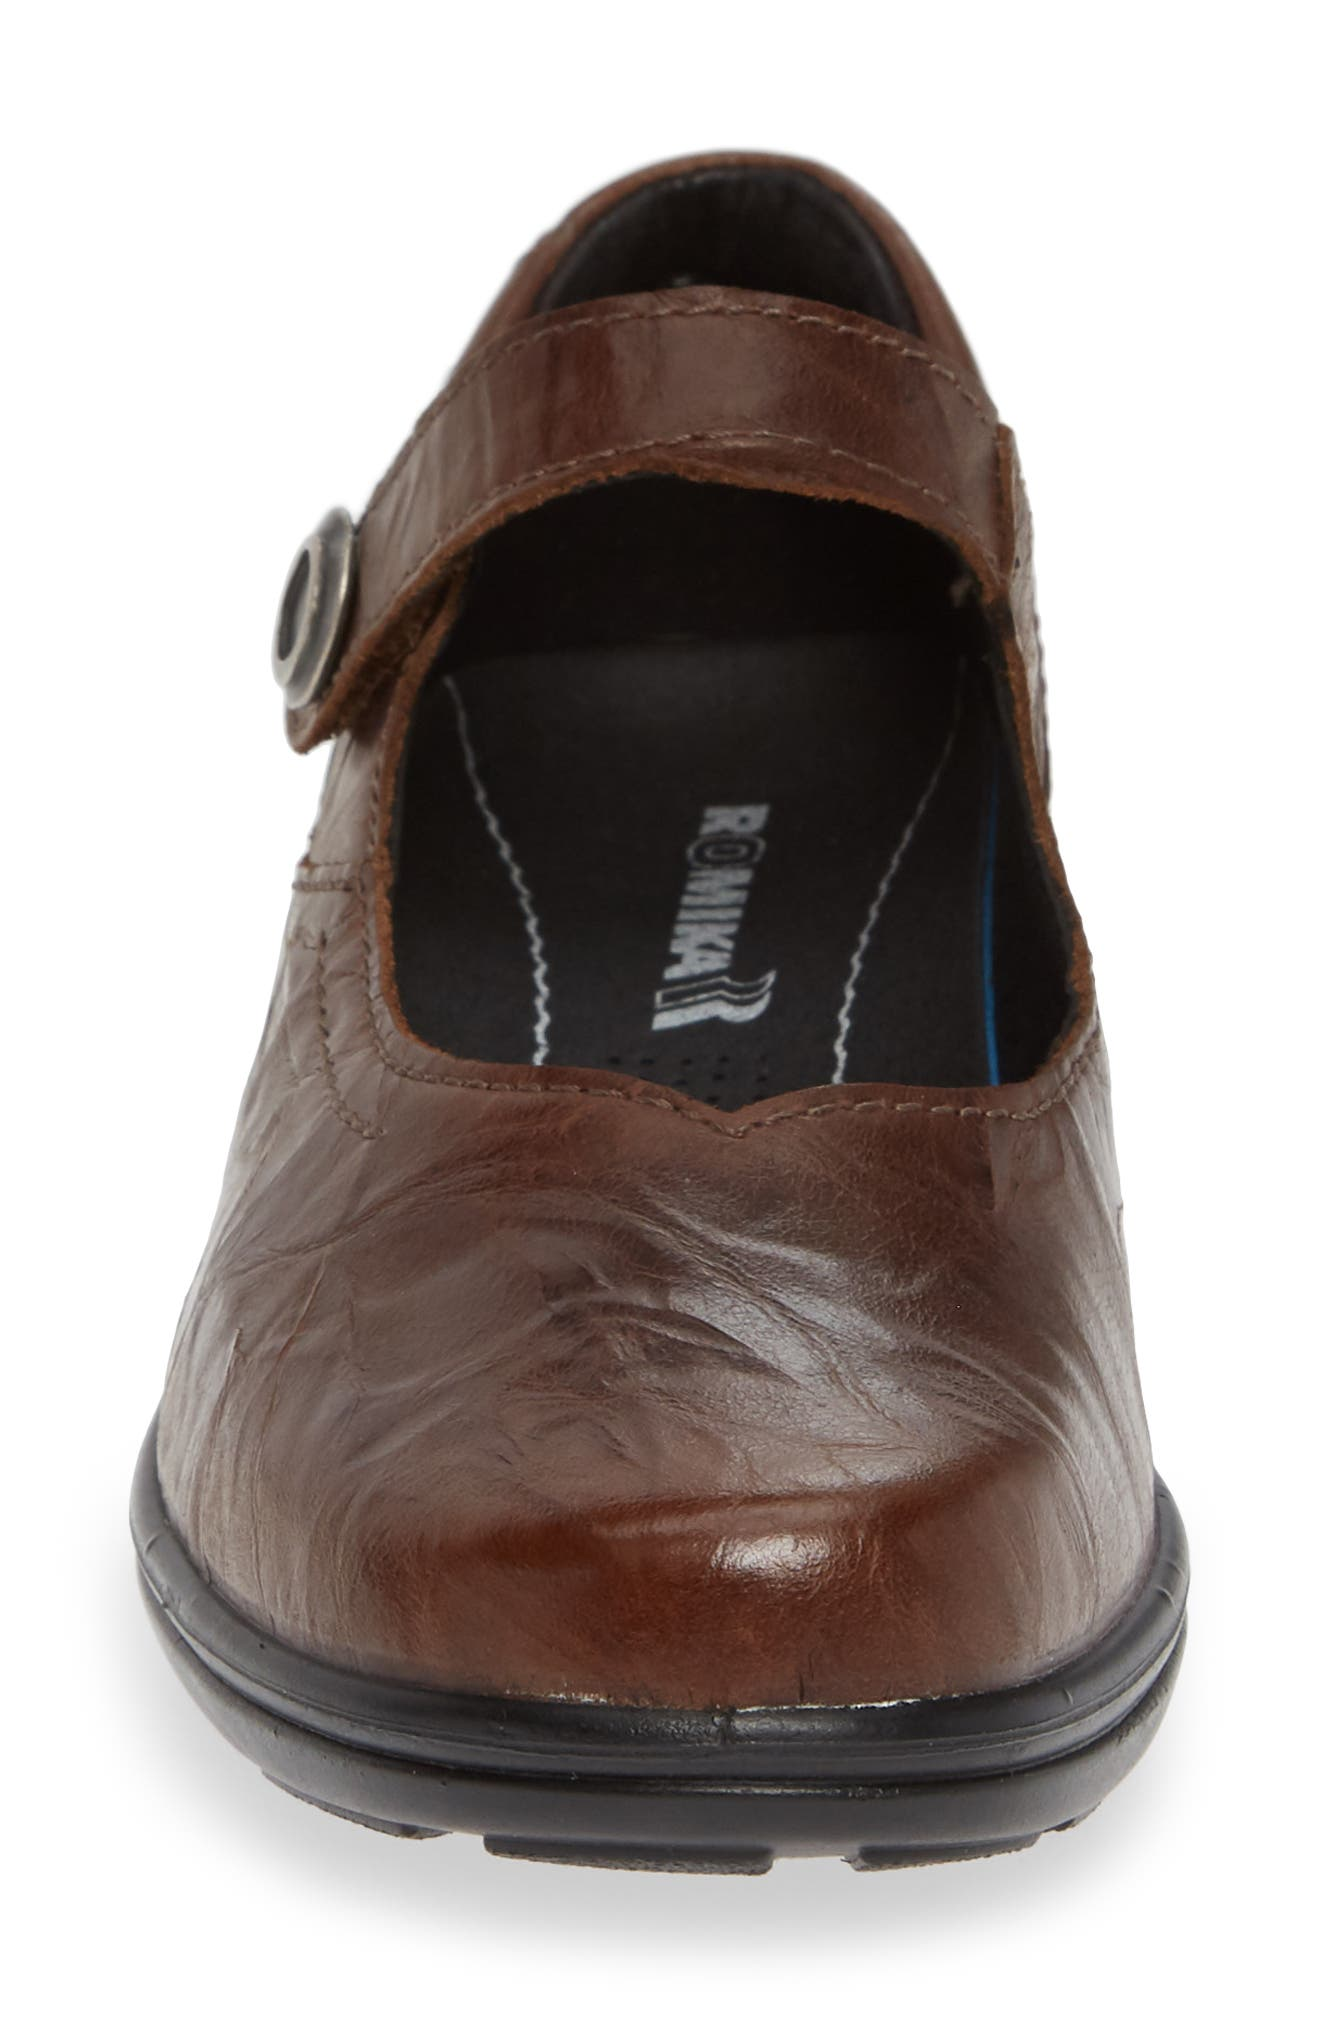 Cassie 50 Mary Jane Flat,                             Alternate thumbnail 4, color,                             BROWN LEATHER